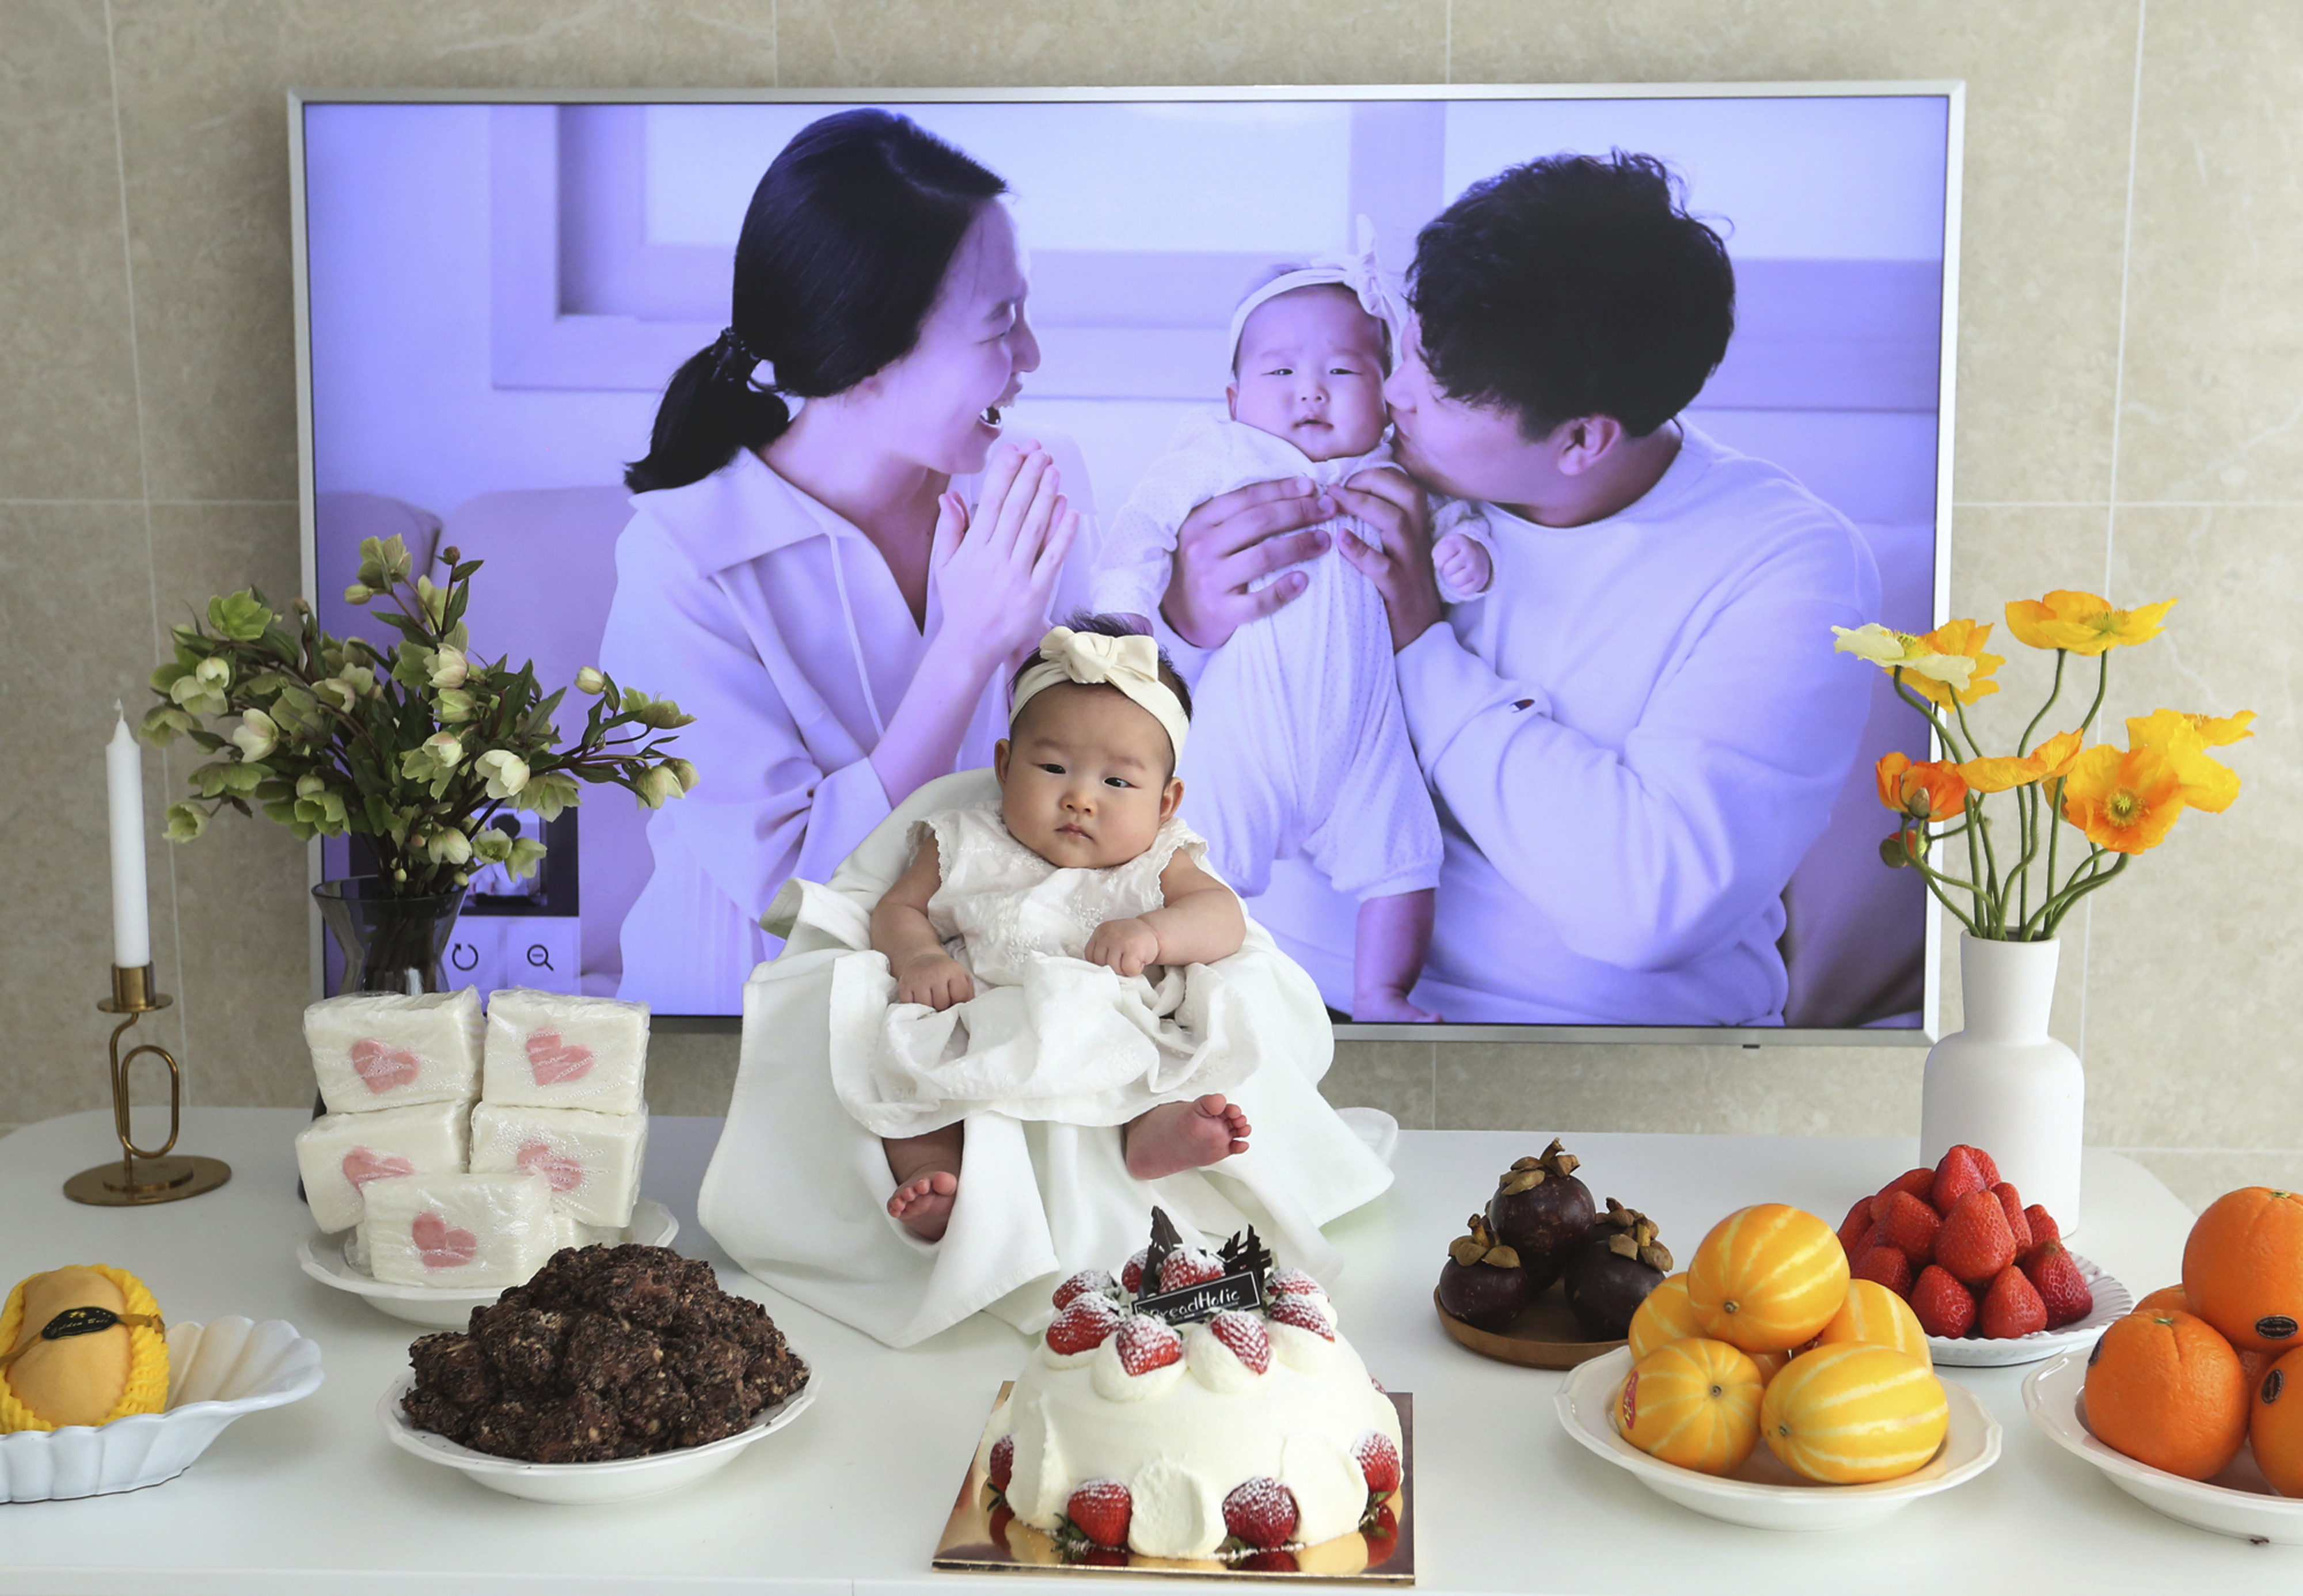 South Korean babies born Dec. 31 become 2-year-olds next day